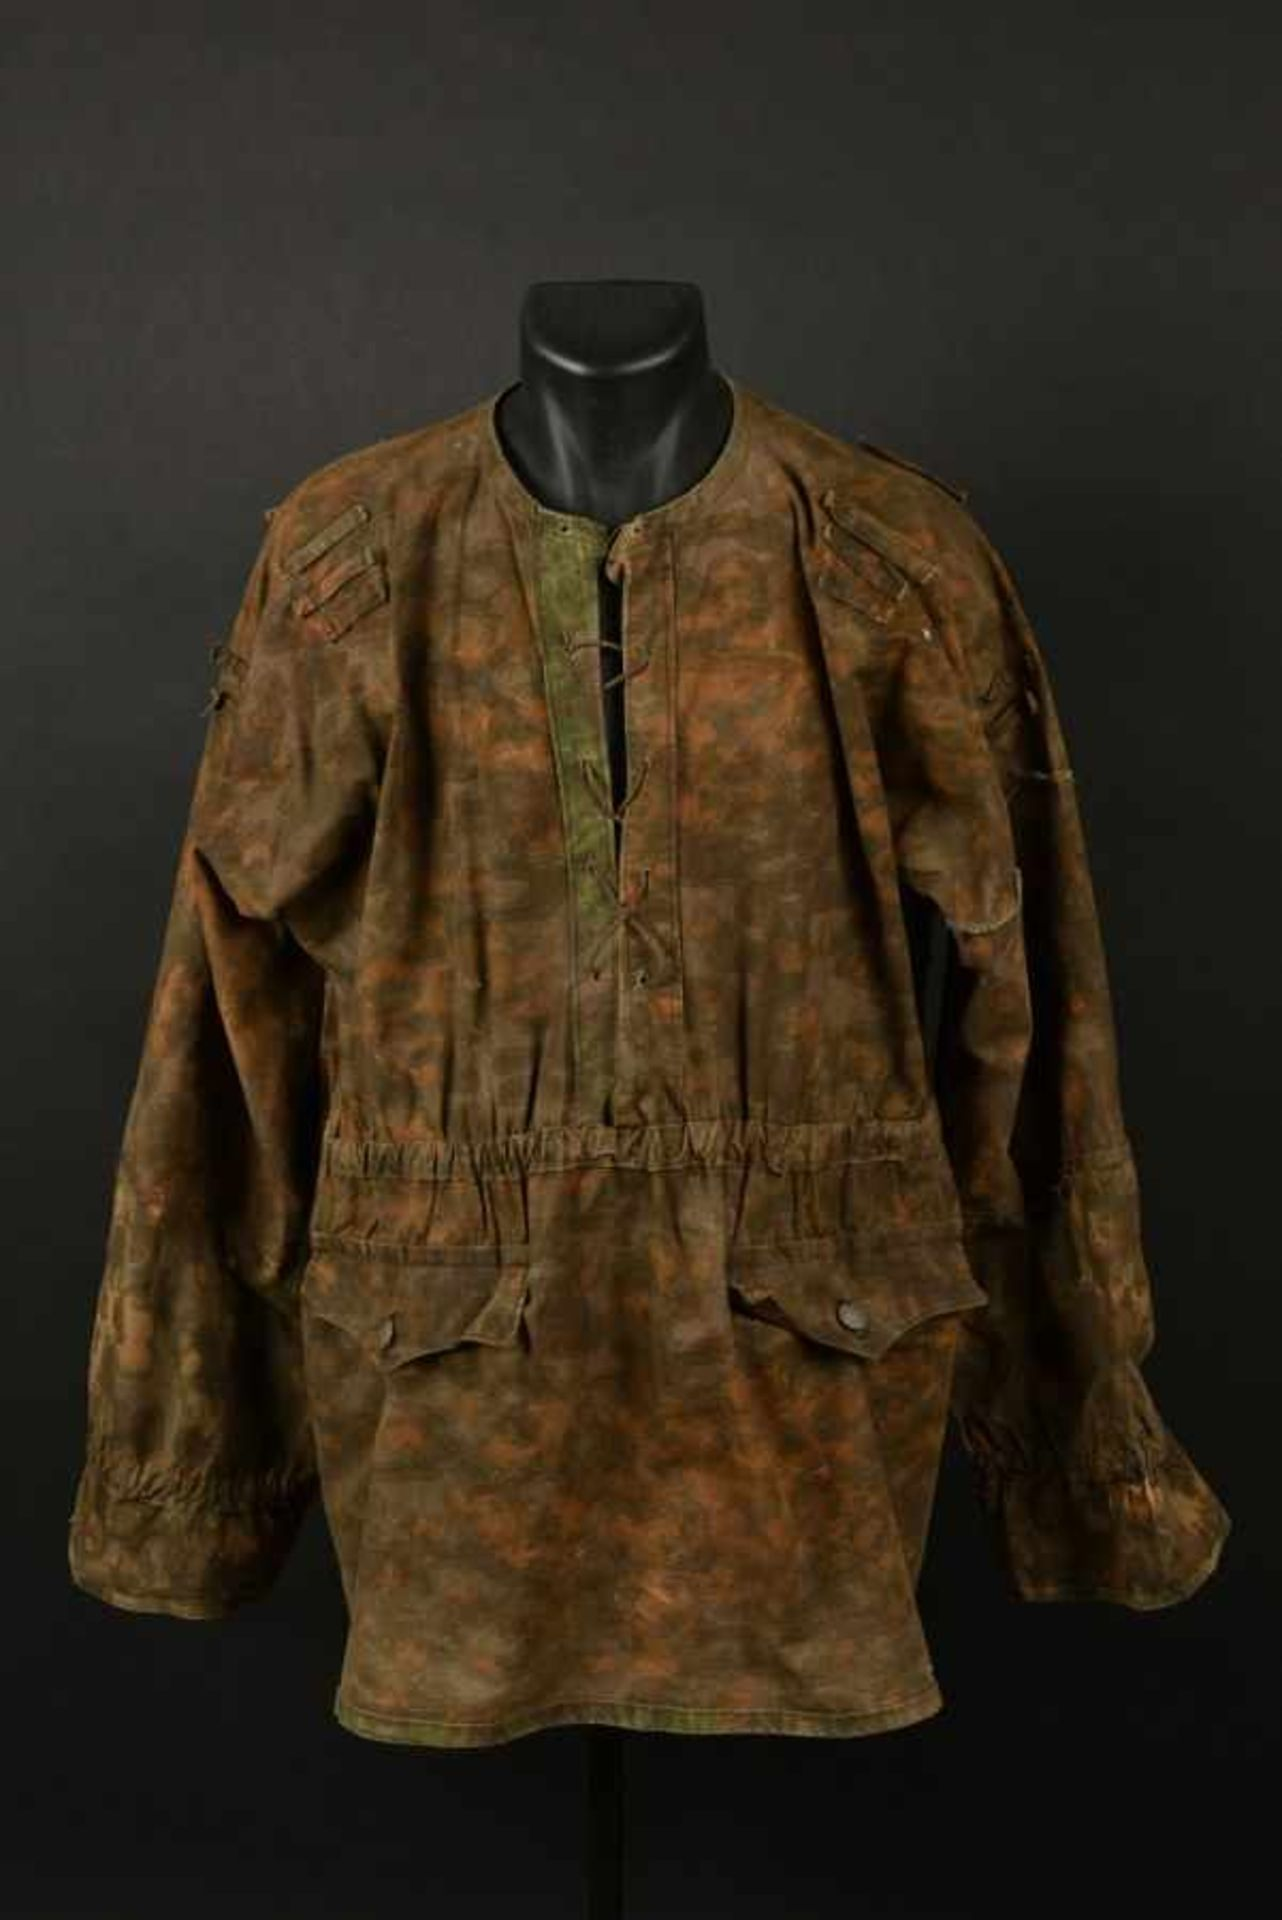 Los 29 - Tarnjacke de la Waffen SS. Tarnjacke of the Waffen SSCamouflage réversible type Blue Edge,